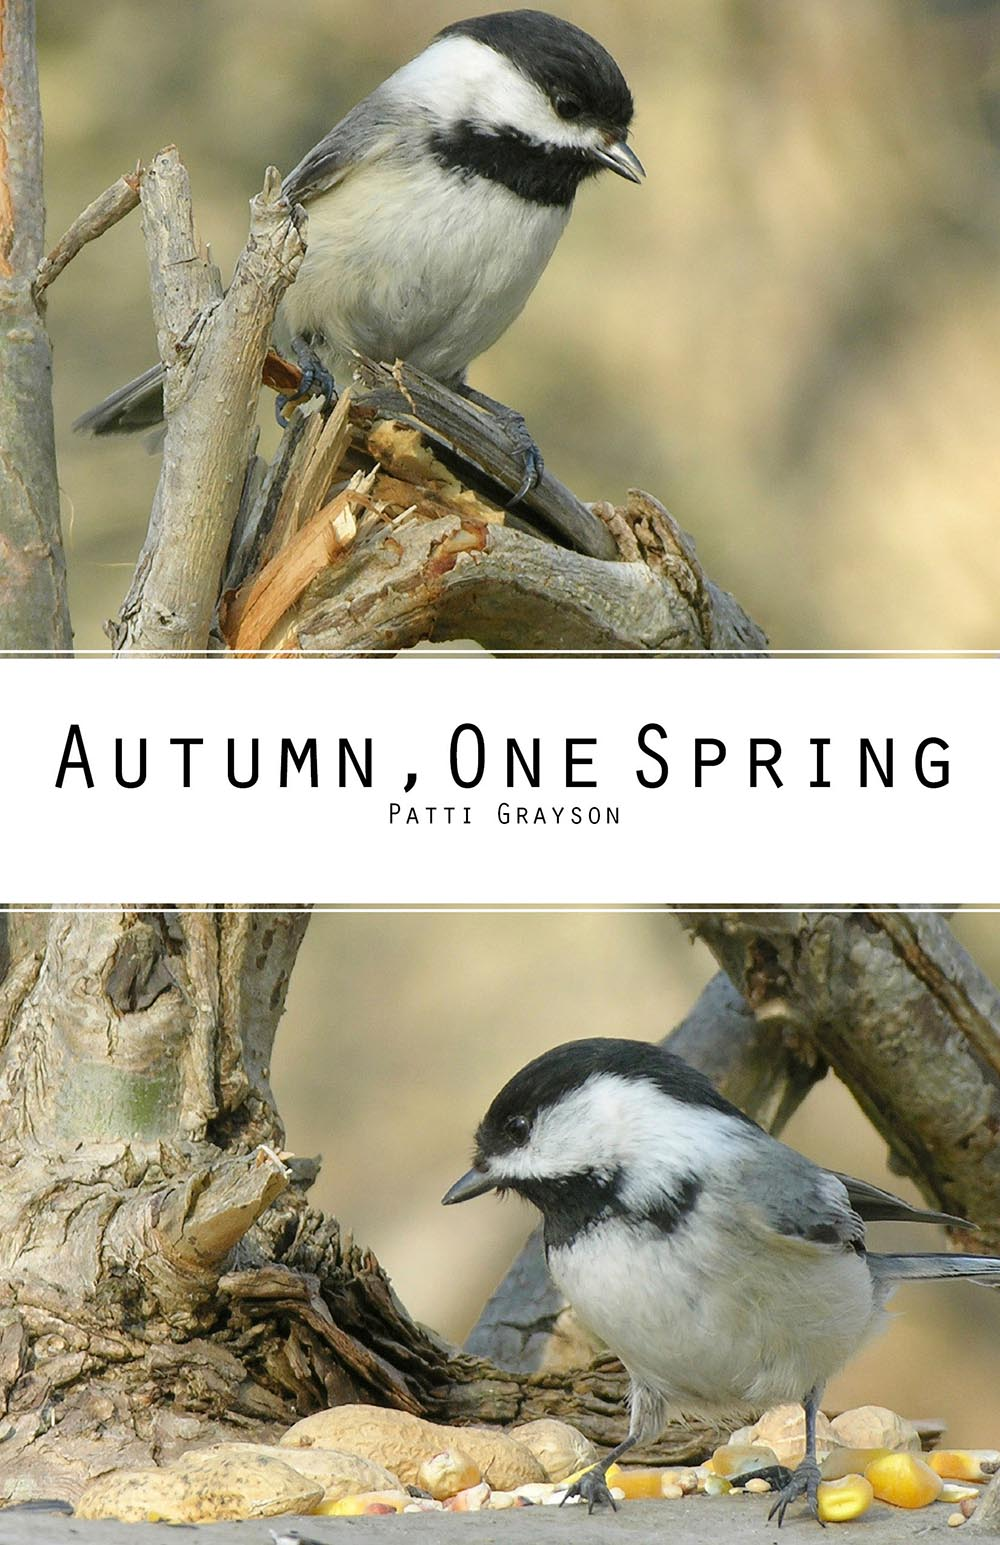 Autumn, One Spring by Patti Grayson